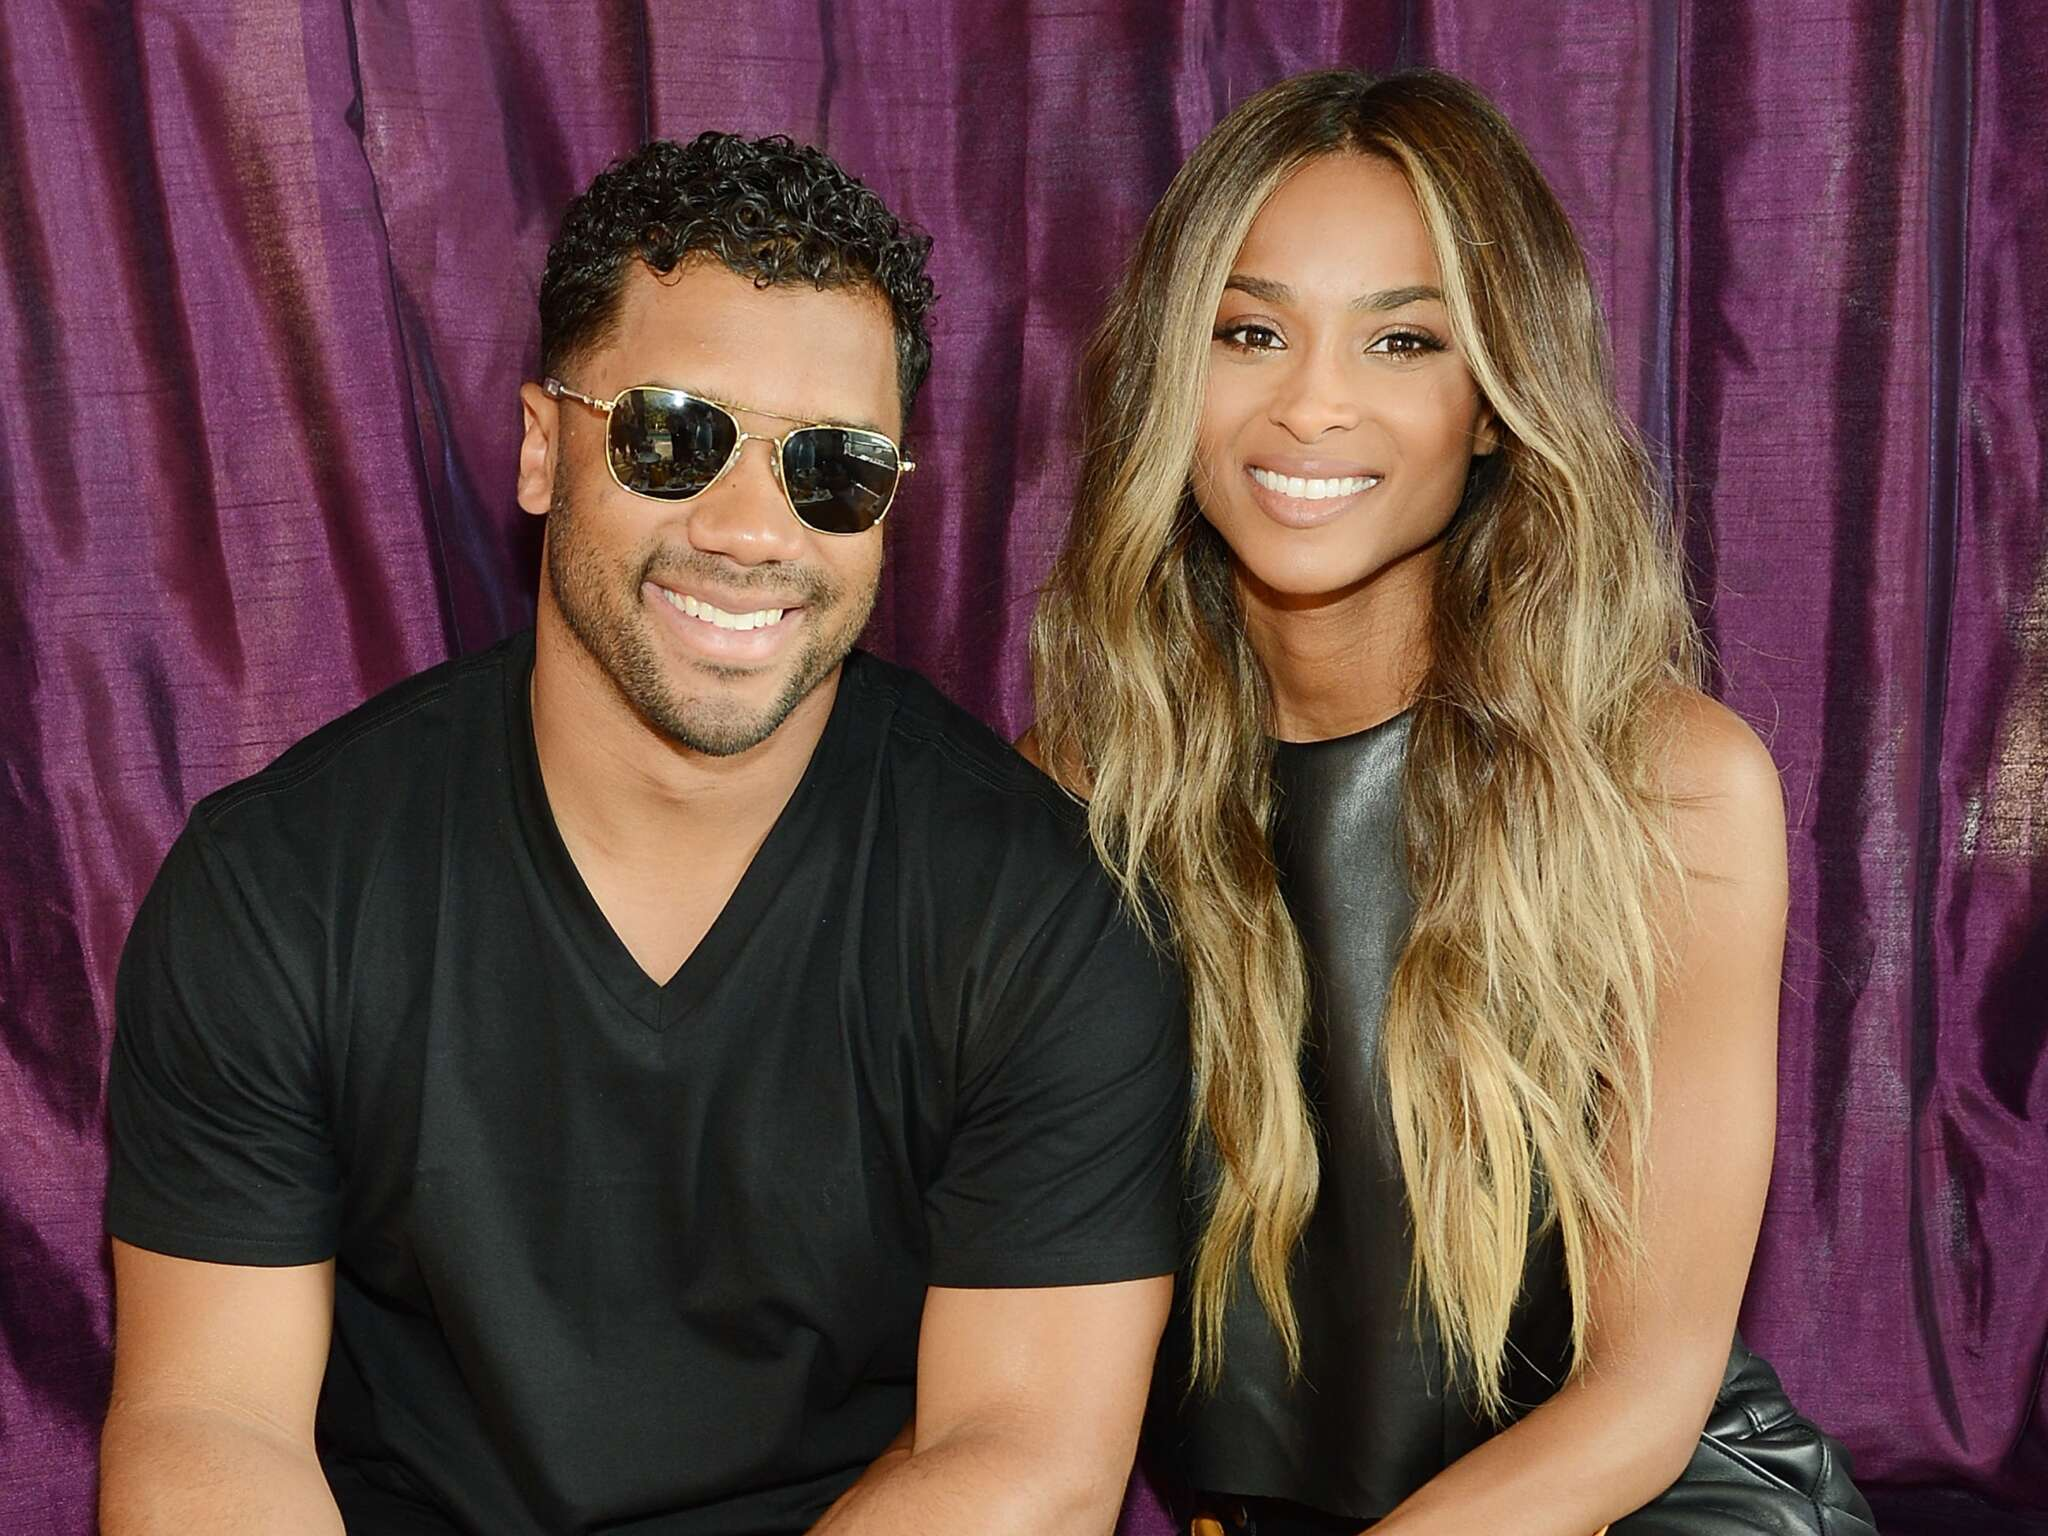 russell-wilson-and-ciara-reveal-whether-futures-toxicity-in-the-media-affects-them